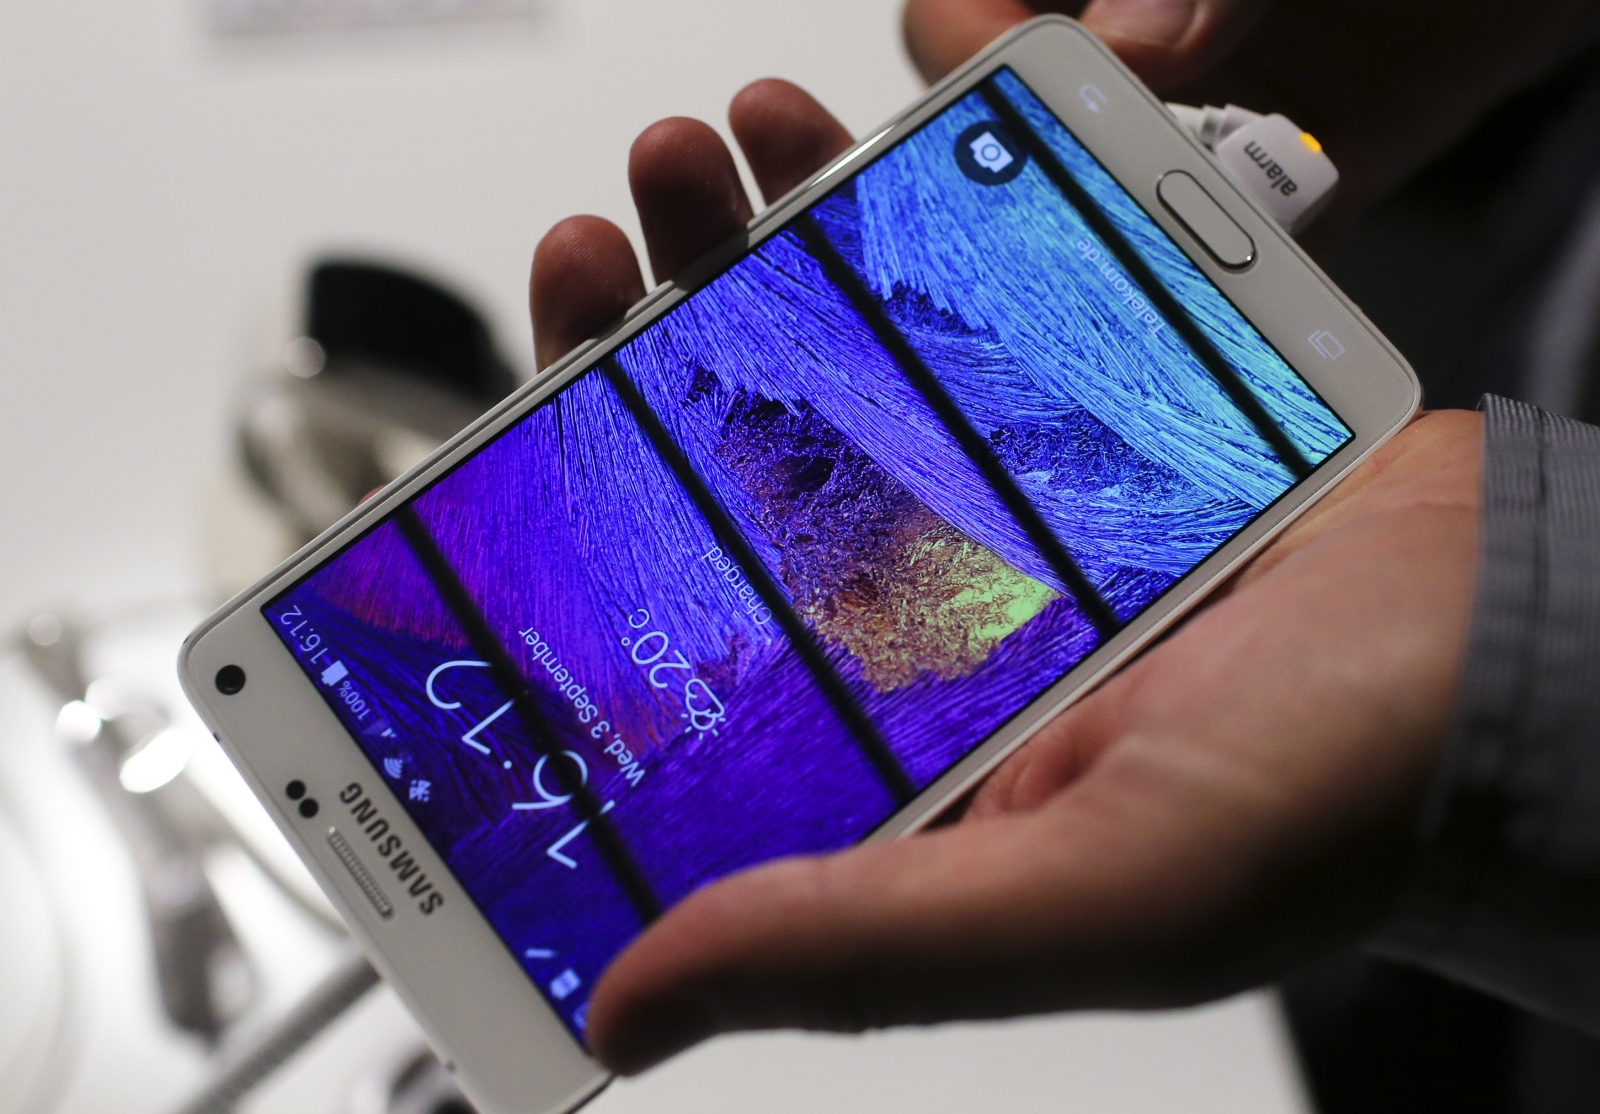 Galaxy Note 4 software update